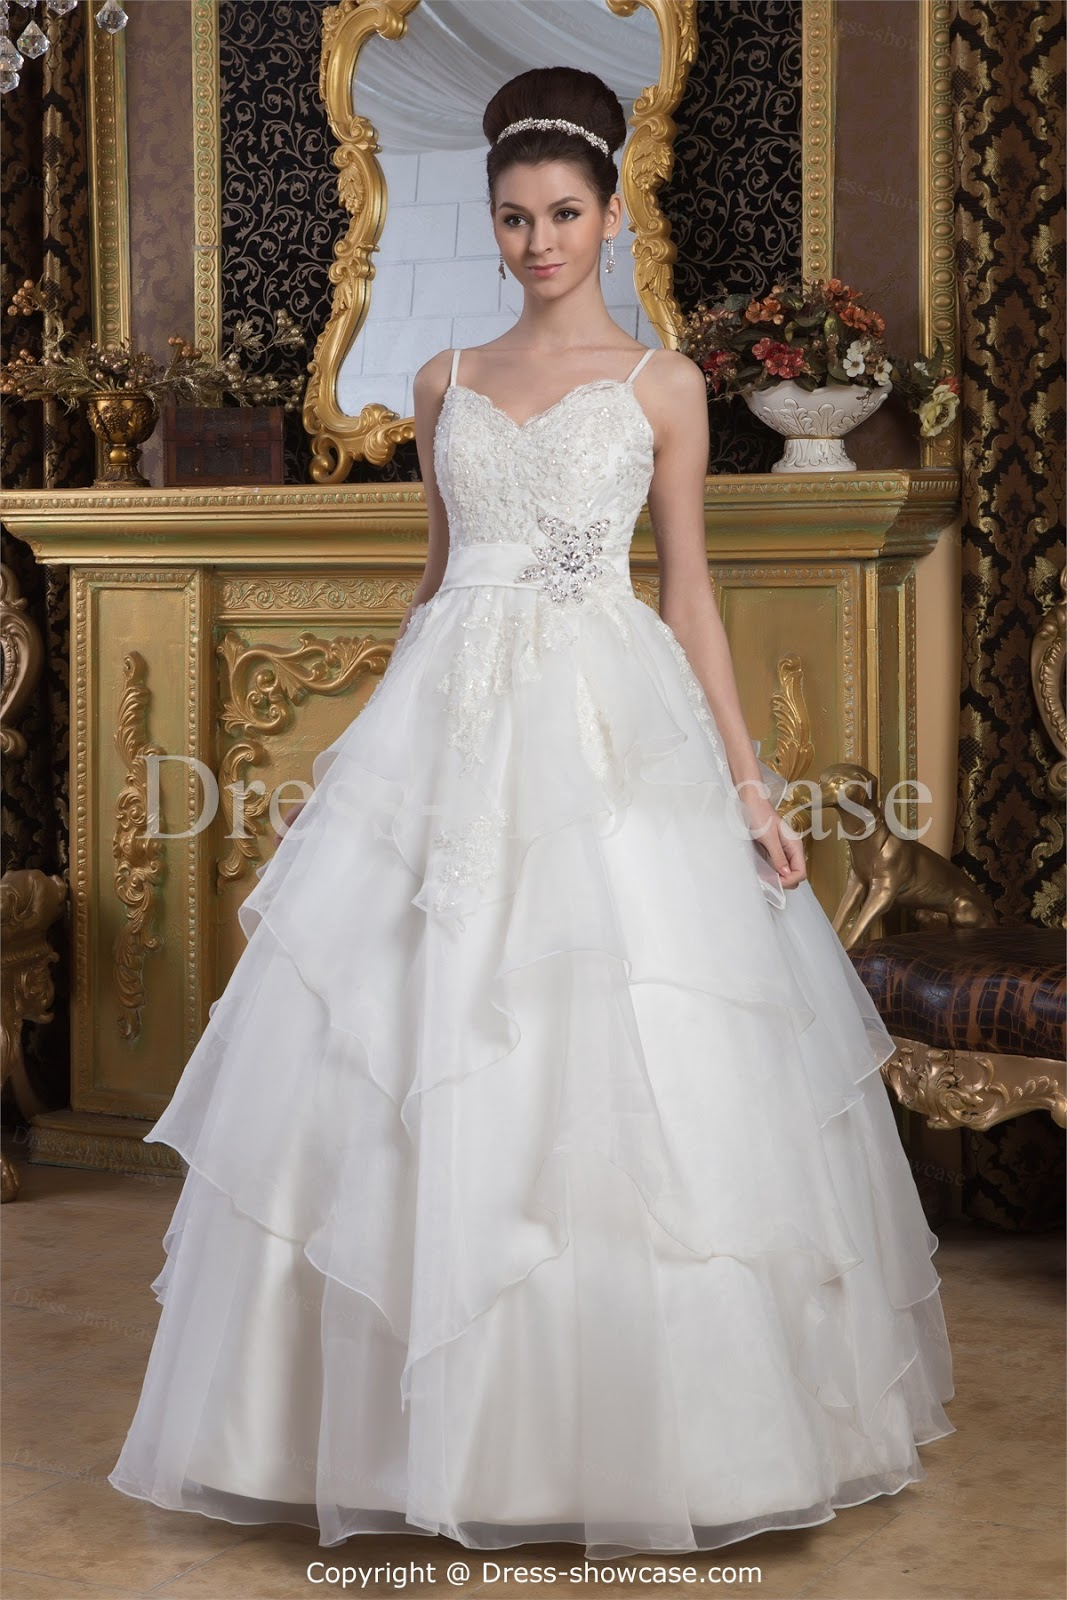 wedding dresses for petite women wedding dresses With wedding dresses for women